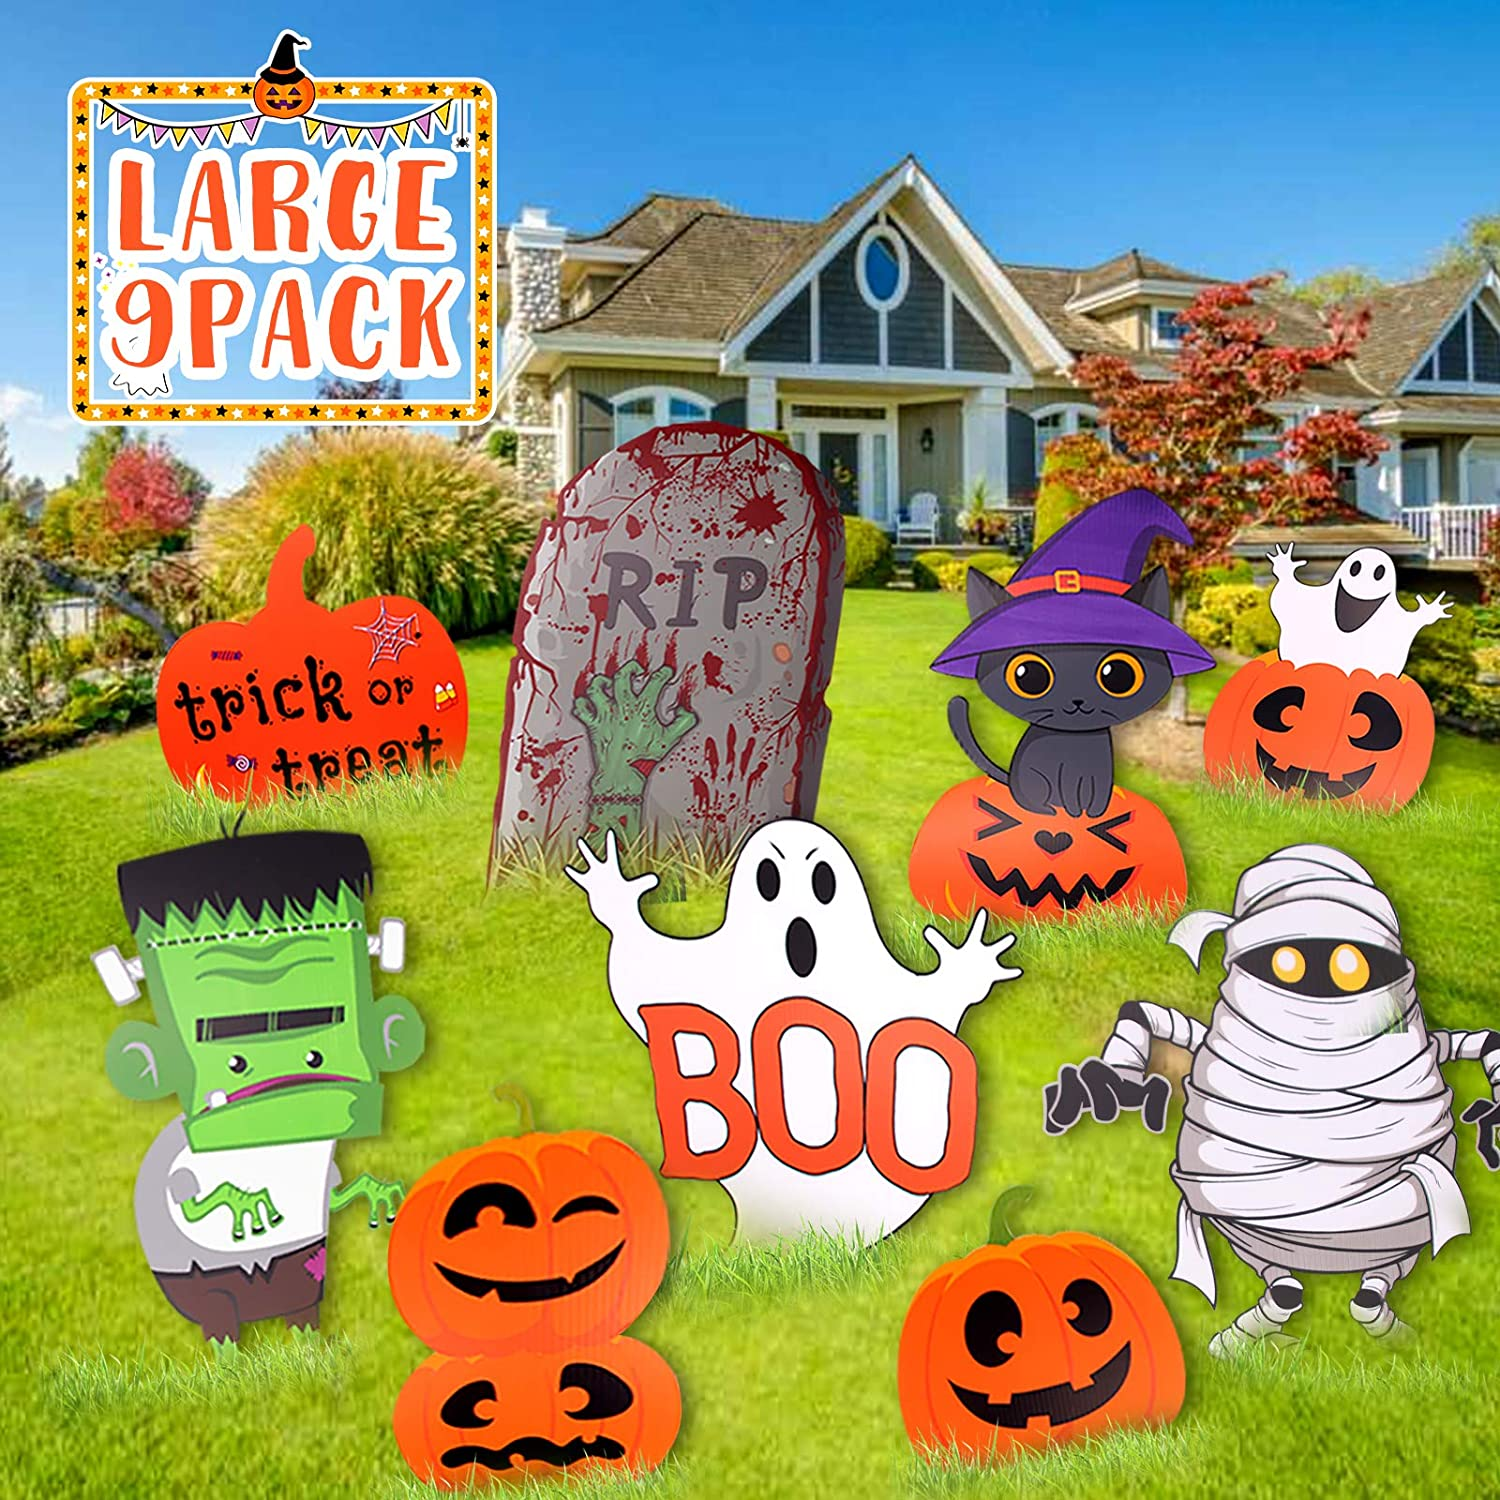 Large Friendly Halloween Yard//Lawn Decorations NIGHT-GRING Yard Signs for Halloween Props Decorations Outdoor 6 Pack Track-or-Treat Corrugate Yard Stake Signs Warning Yard Sign Stakes